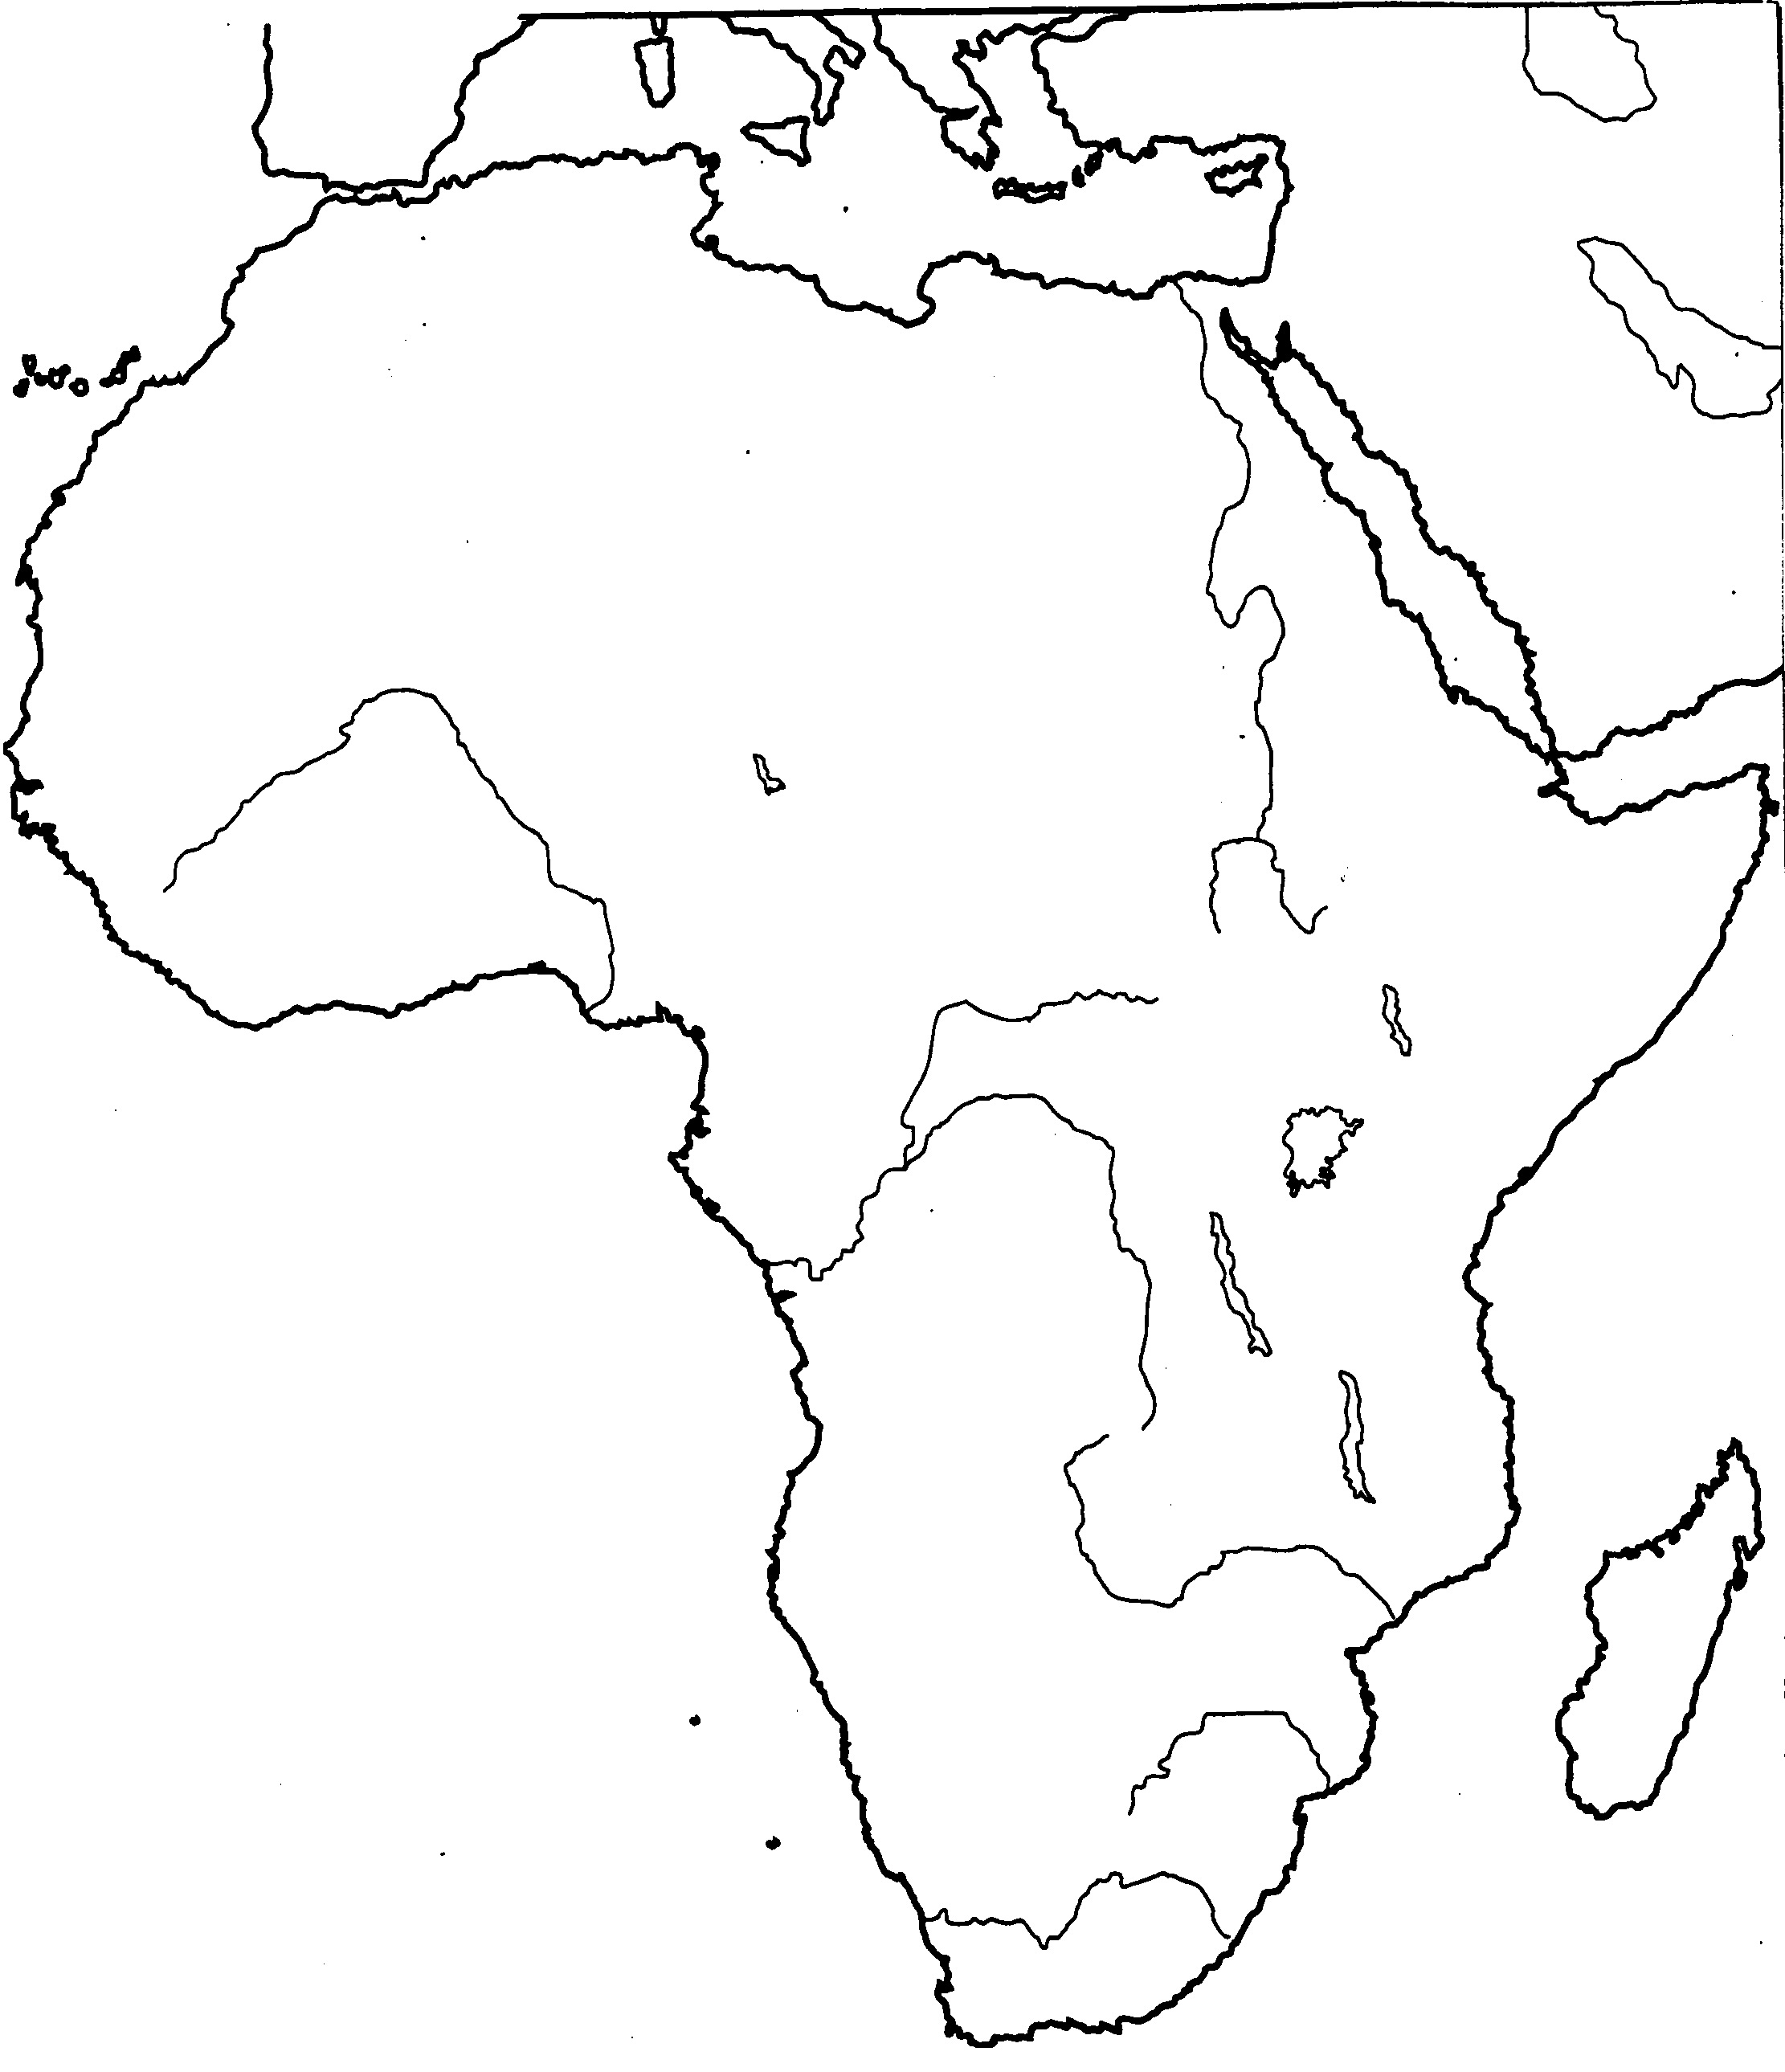 sub saharan africa map blank Africa Map Blank Political Map Of Africa Printable